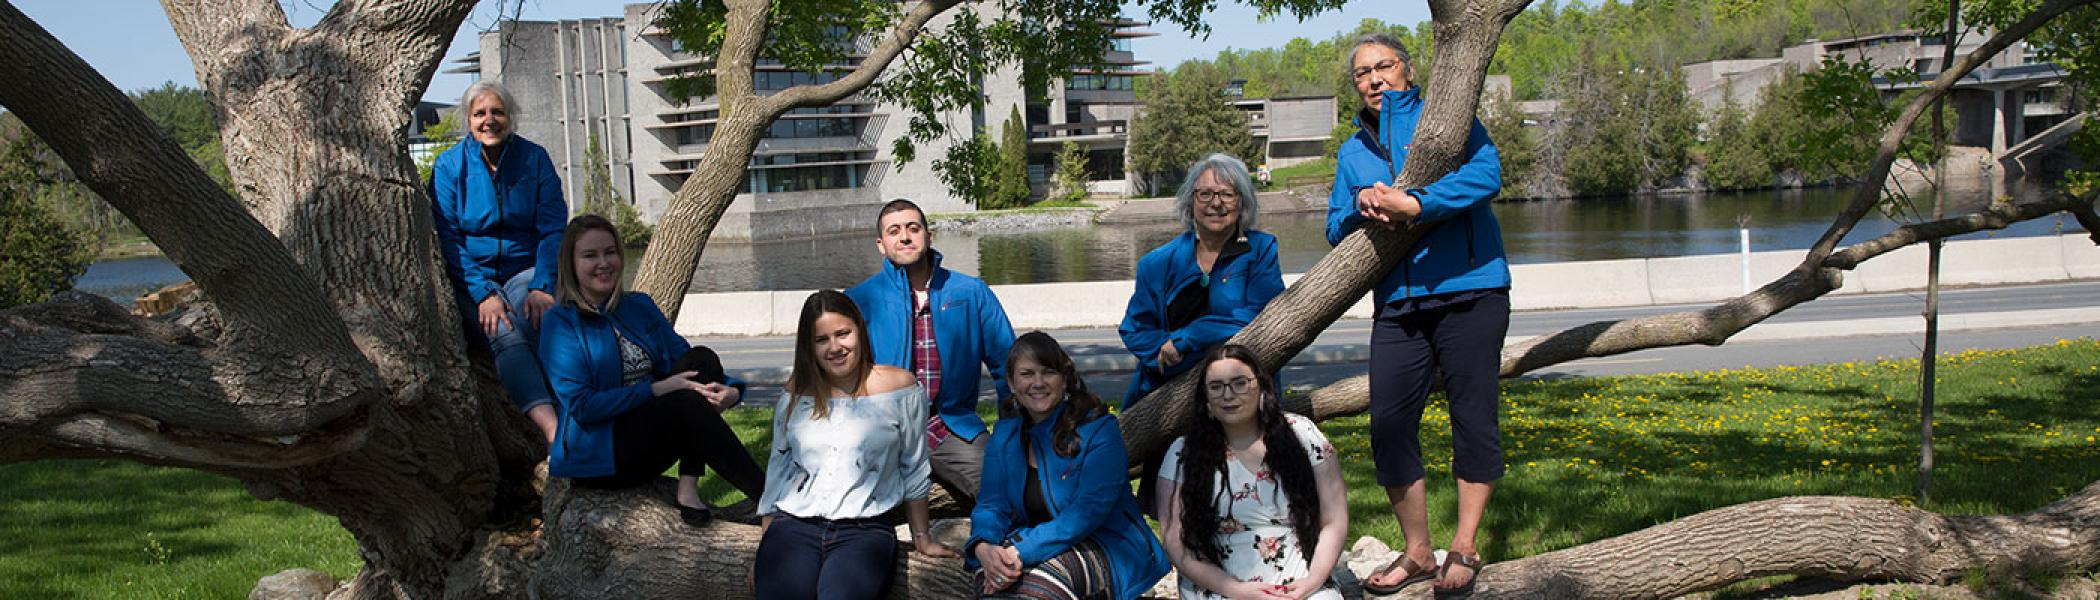 FPHL Department team sitting on a tree outside on a summer day.